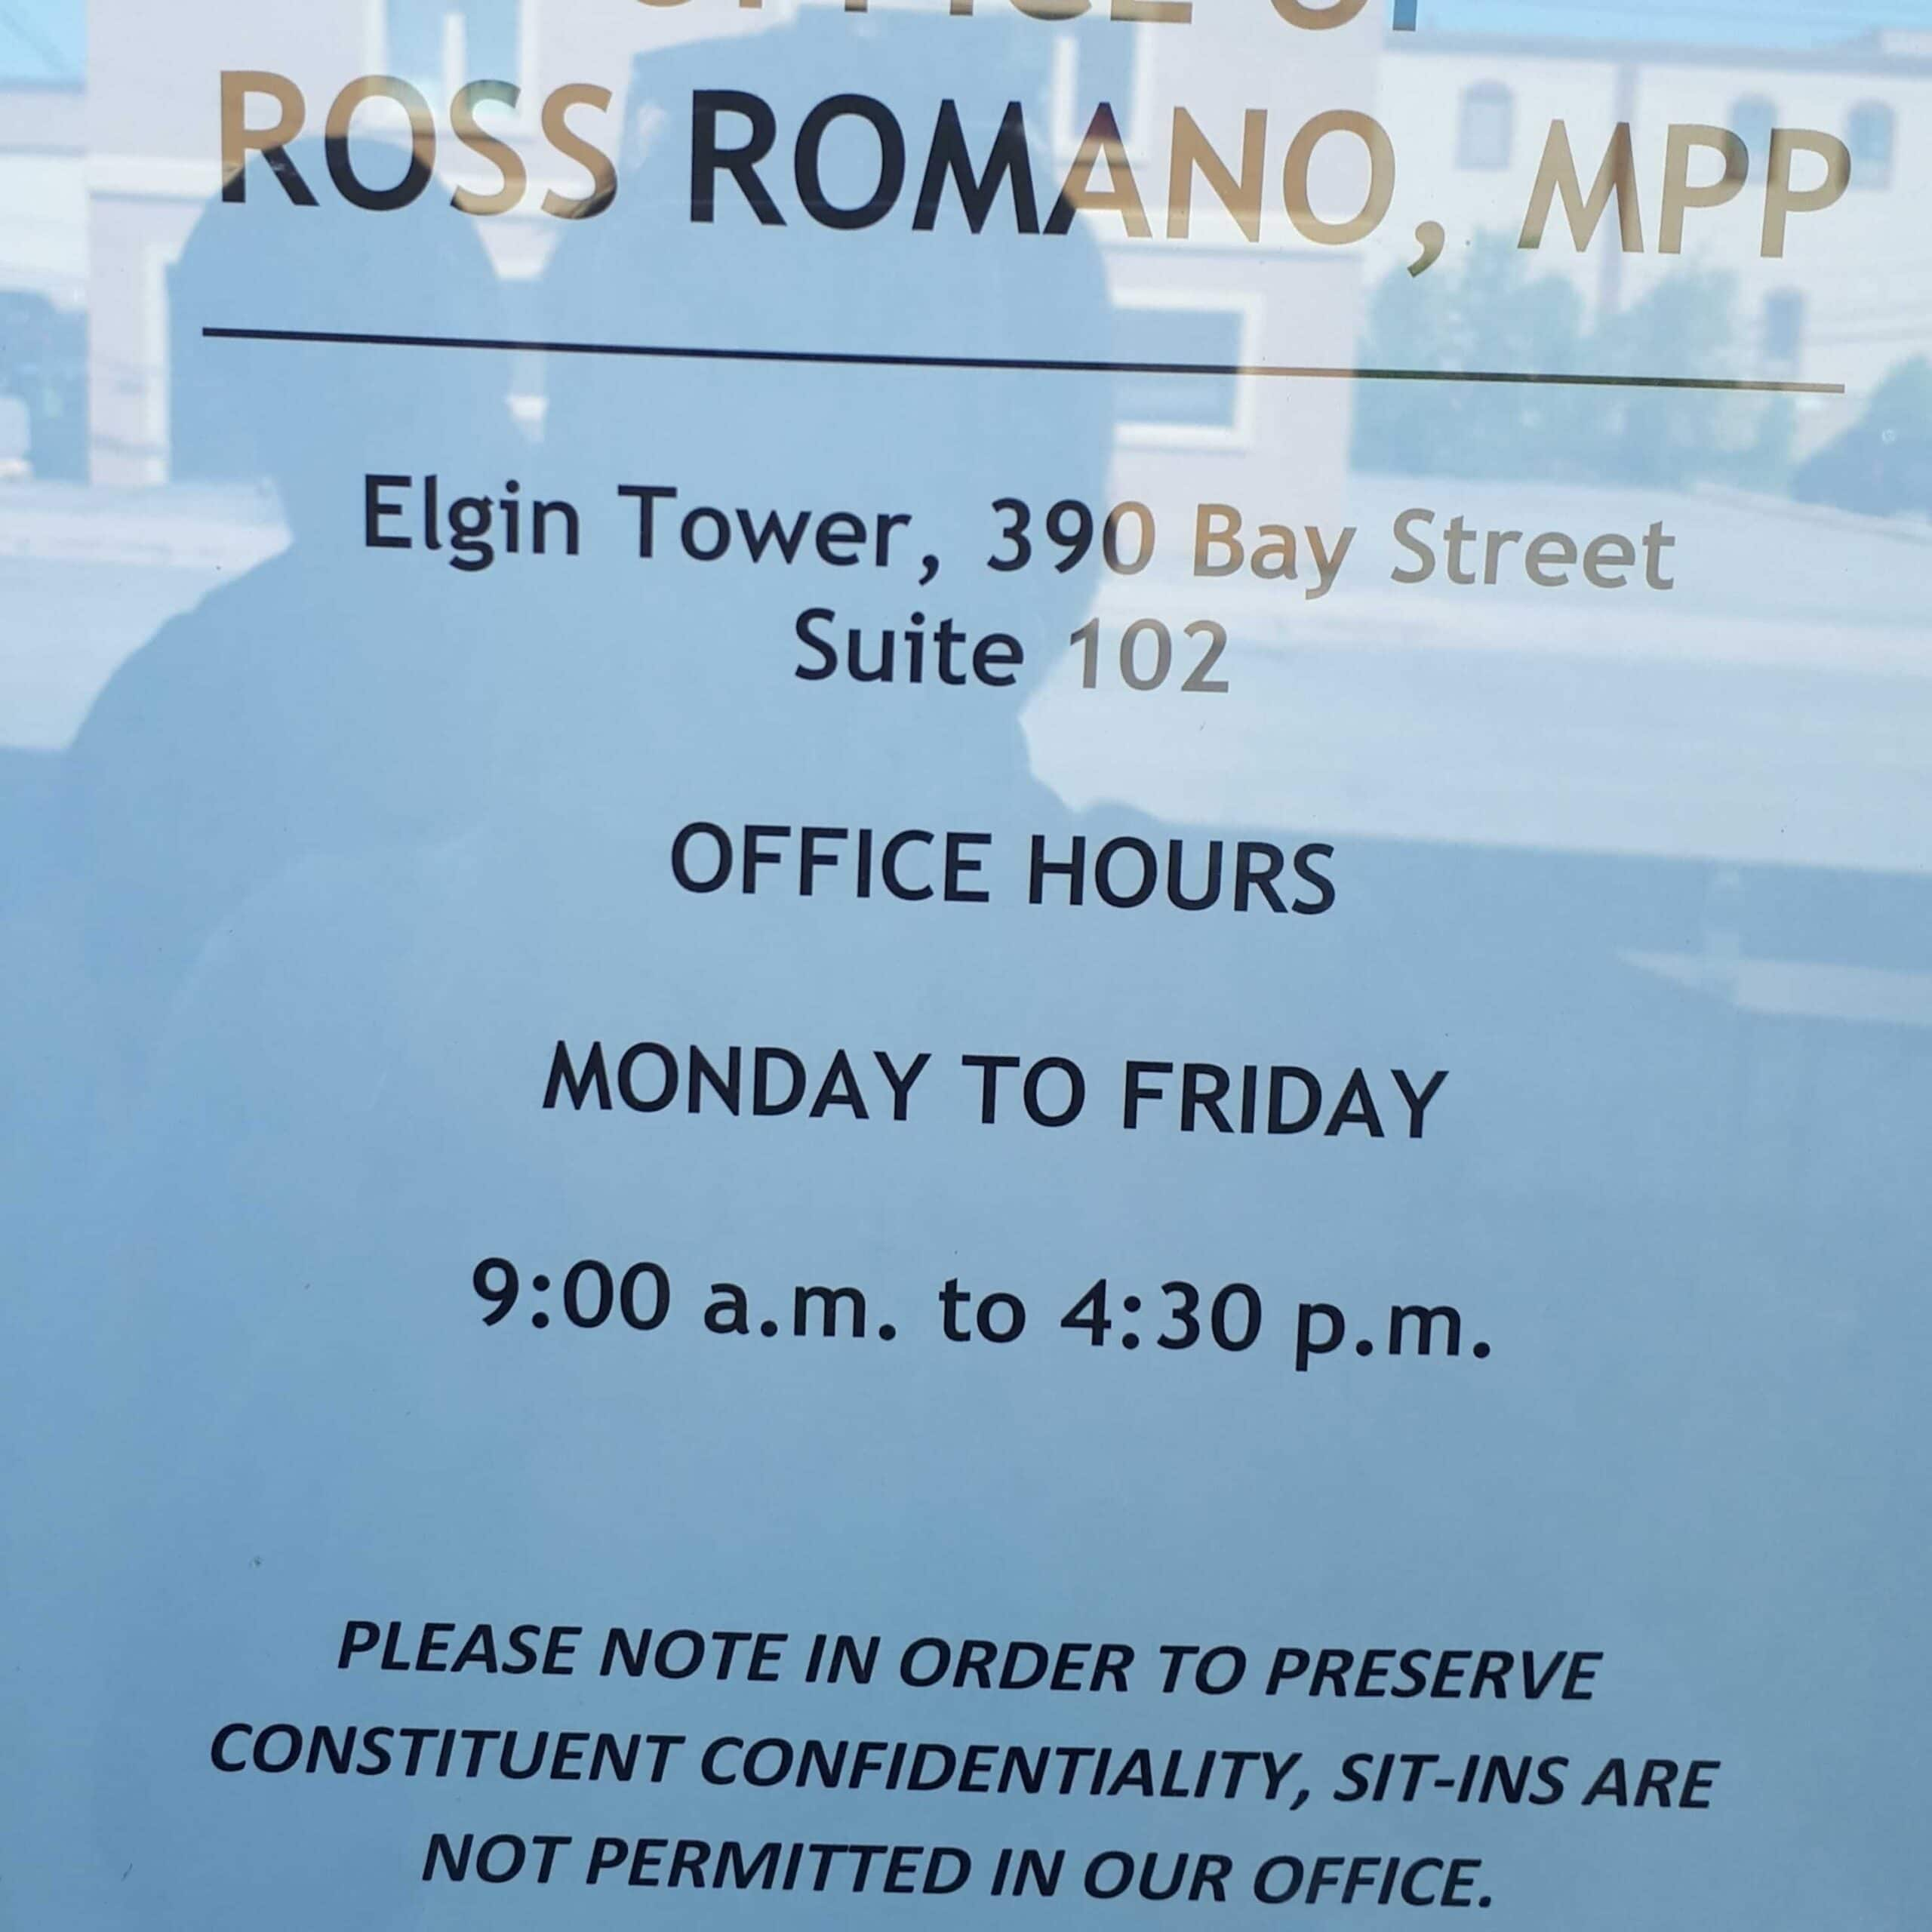 MPP Ross Romano - Sit-ins are not permitted in our office